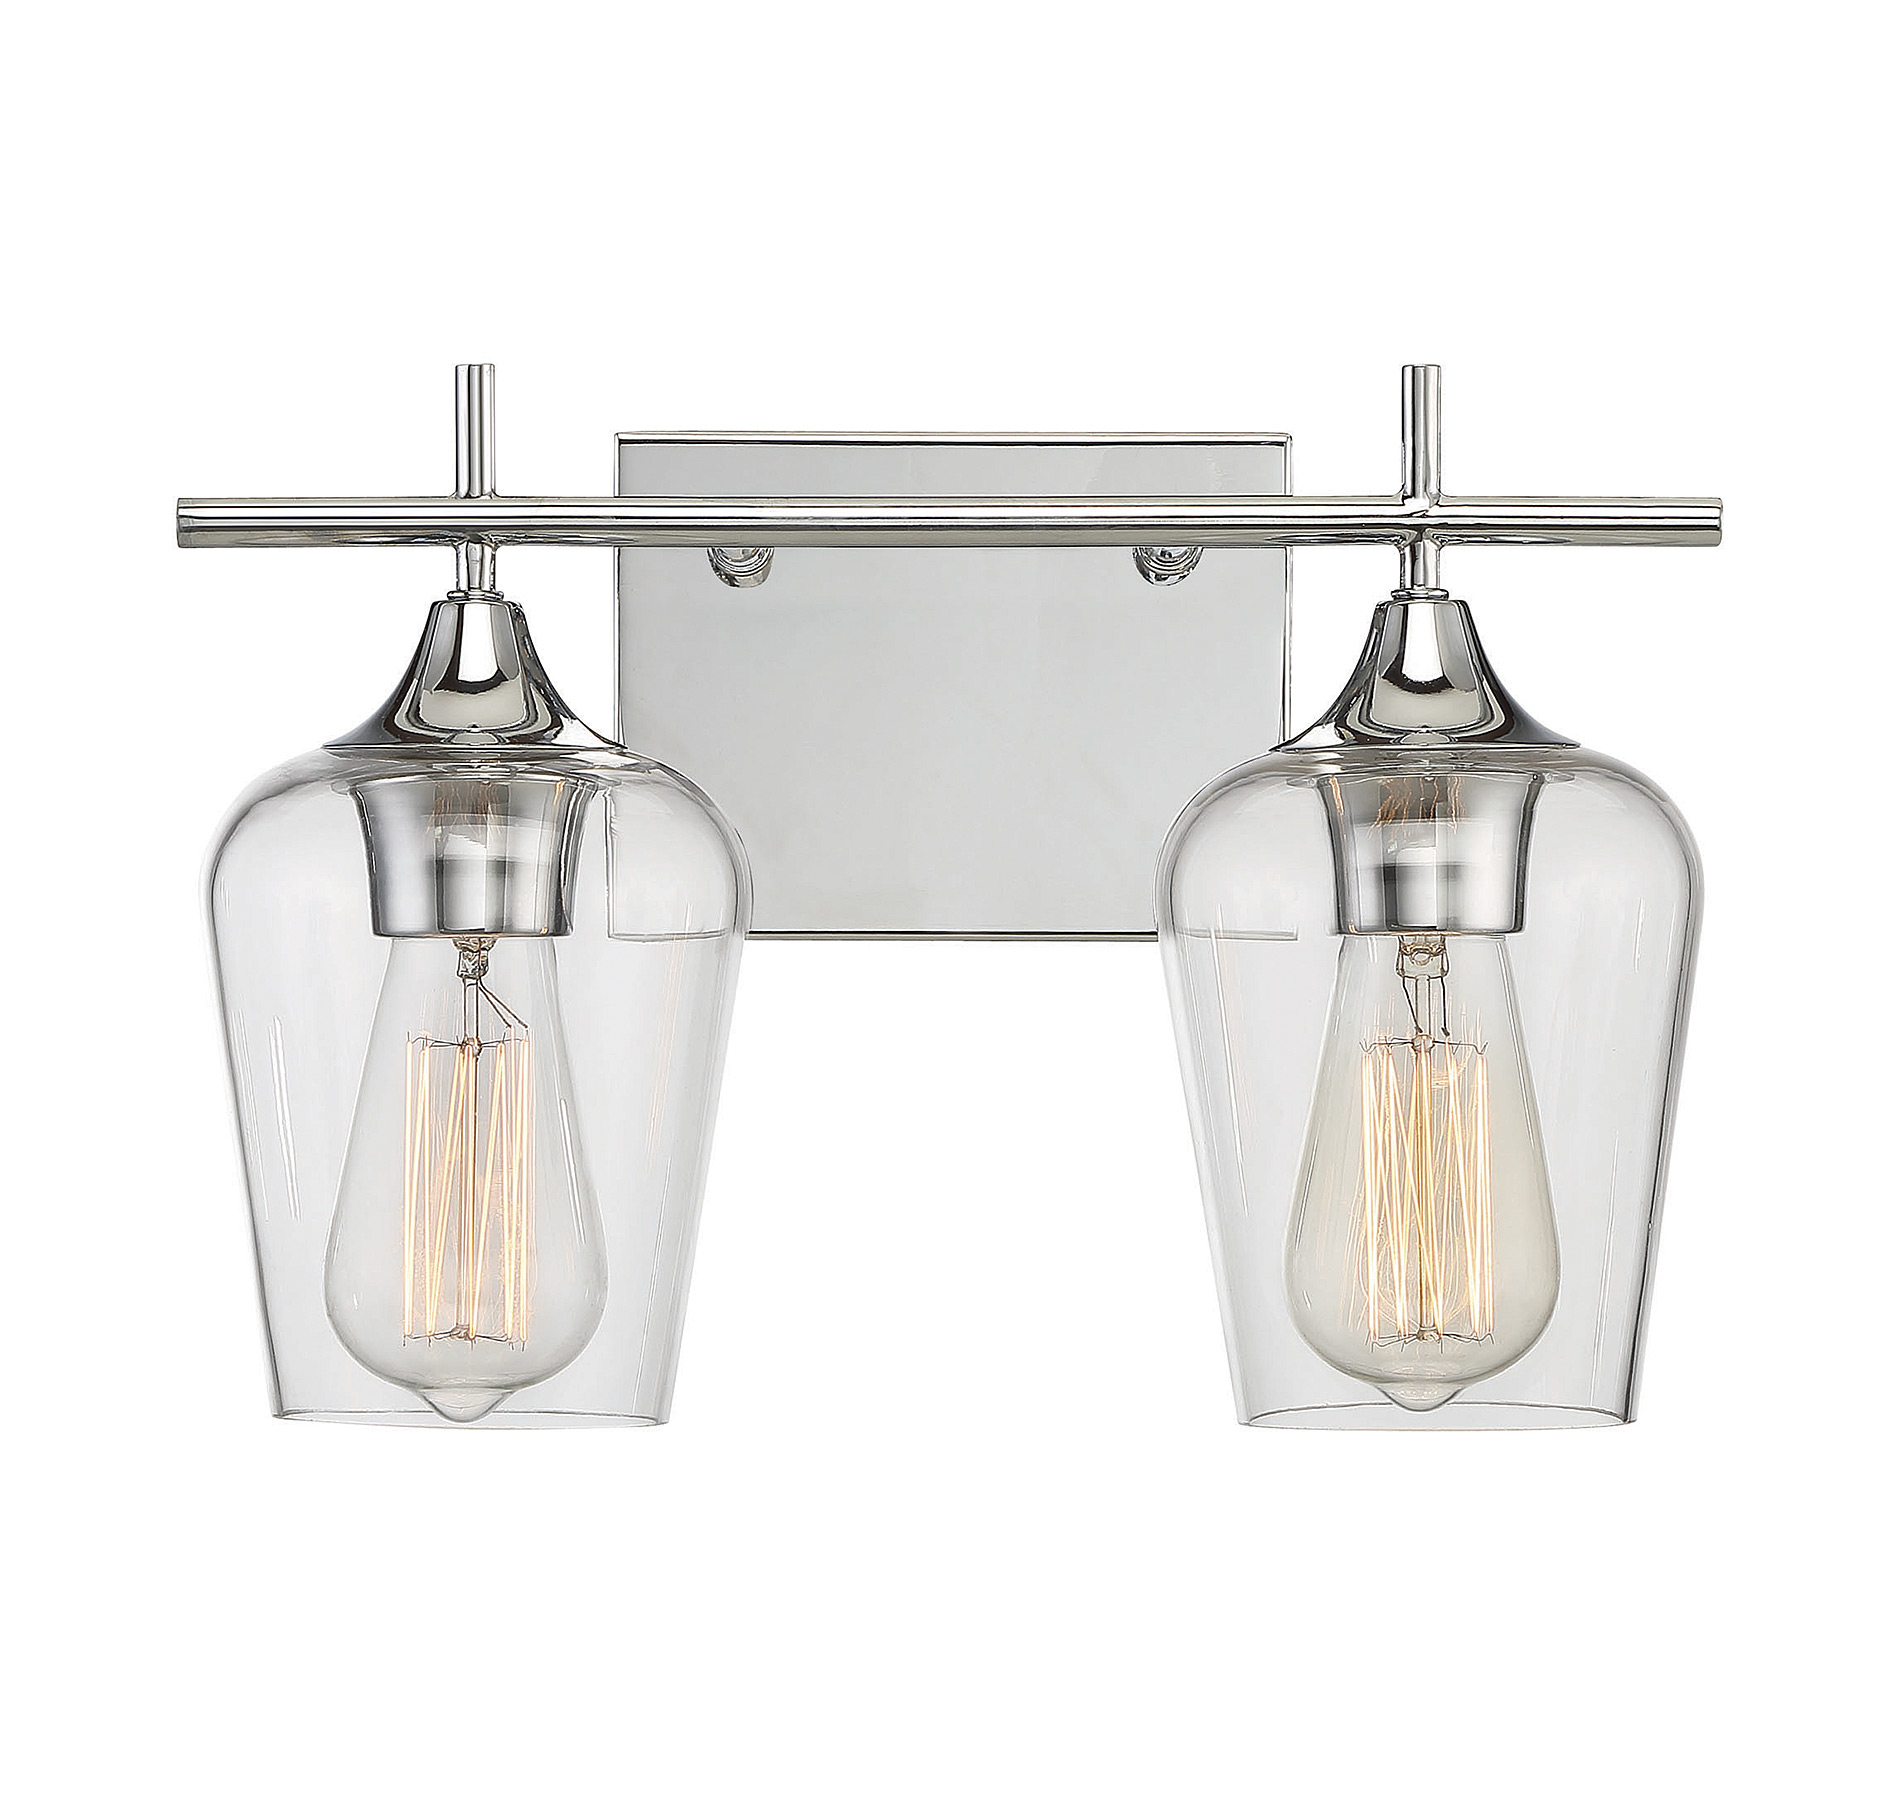 fixtures light bathroom lights lighting vanity ceiling plug home ideas mount chrome in makeup depot